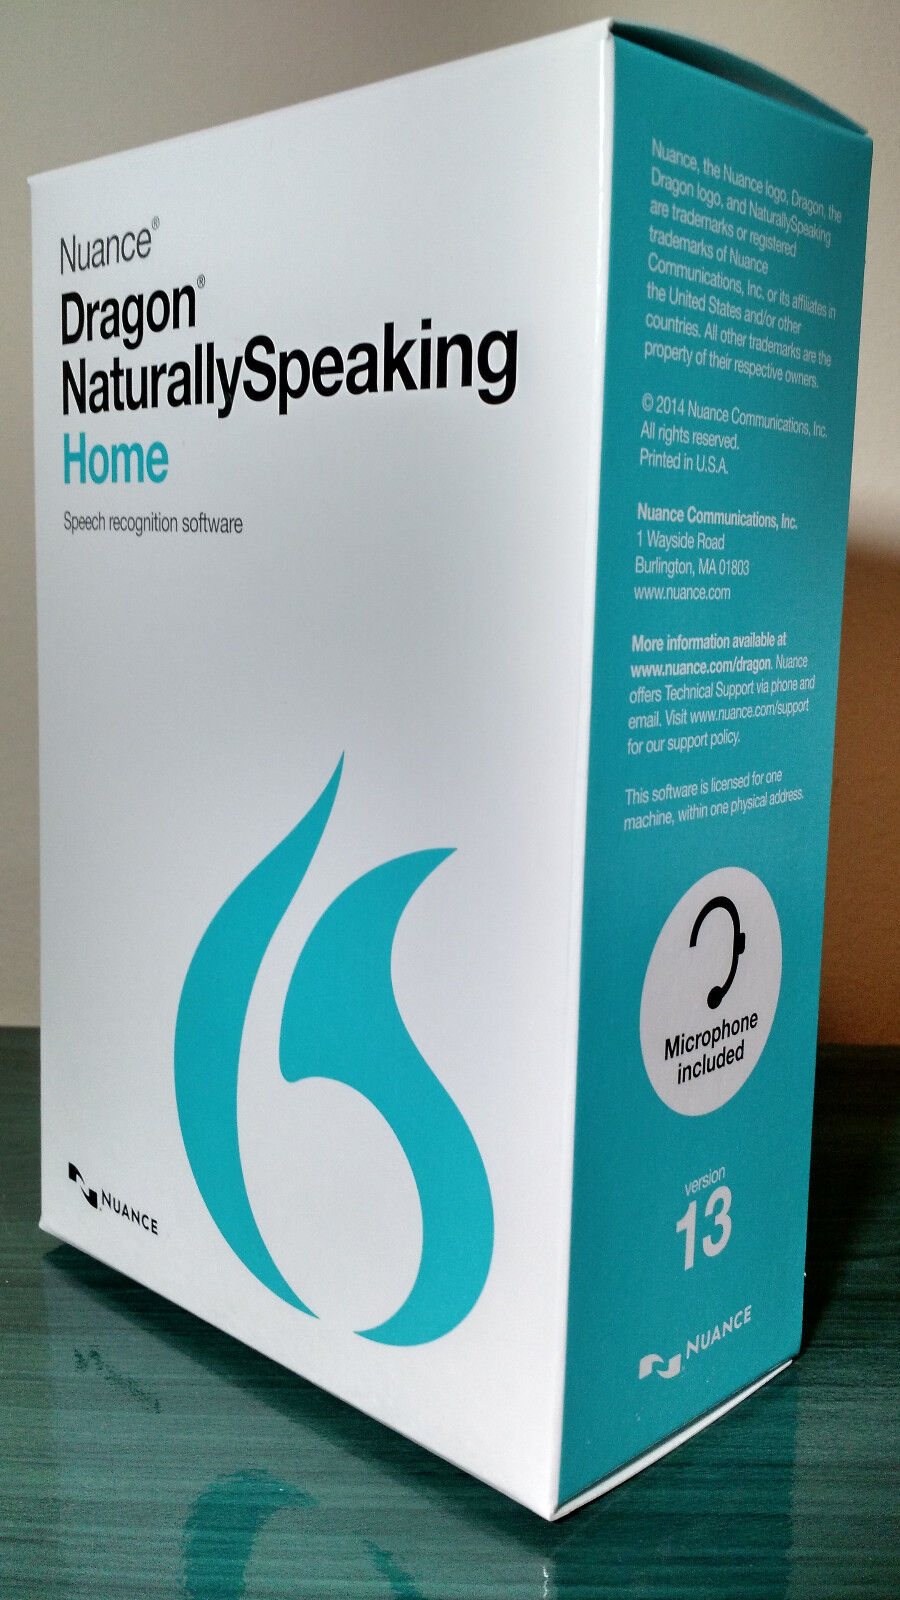 NUANCE Dragon Naturally Speaking 13 13.0 Home Speech Reco...